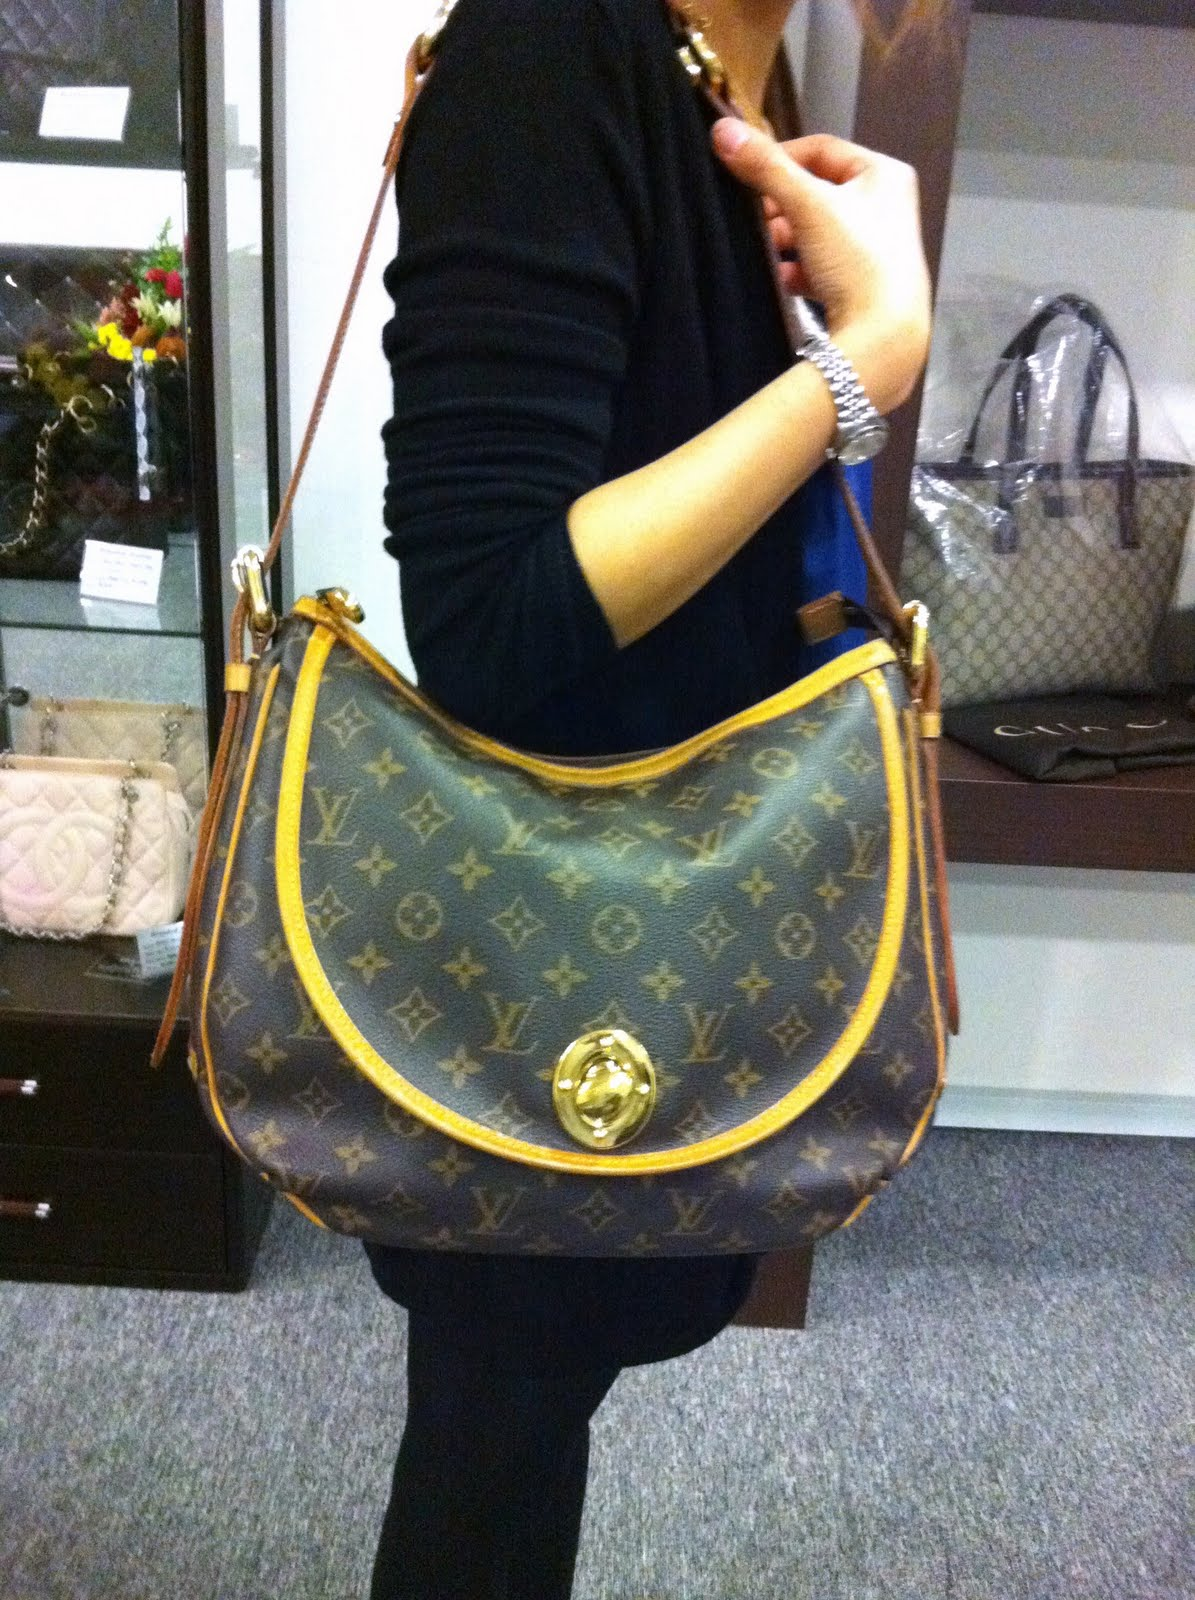 Branded Station Sdn Bhd 二手名牌专卖店 全新 Louis Vuitton Sold Out